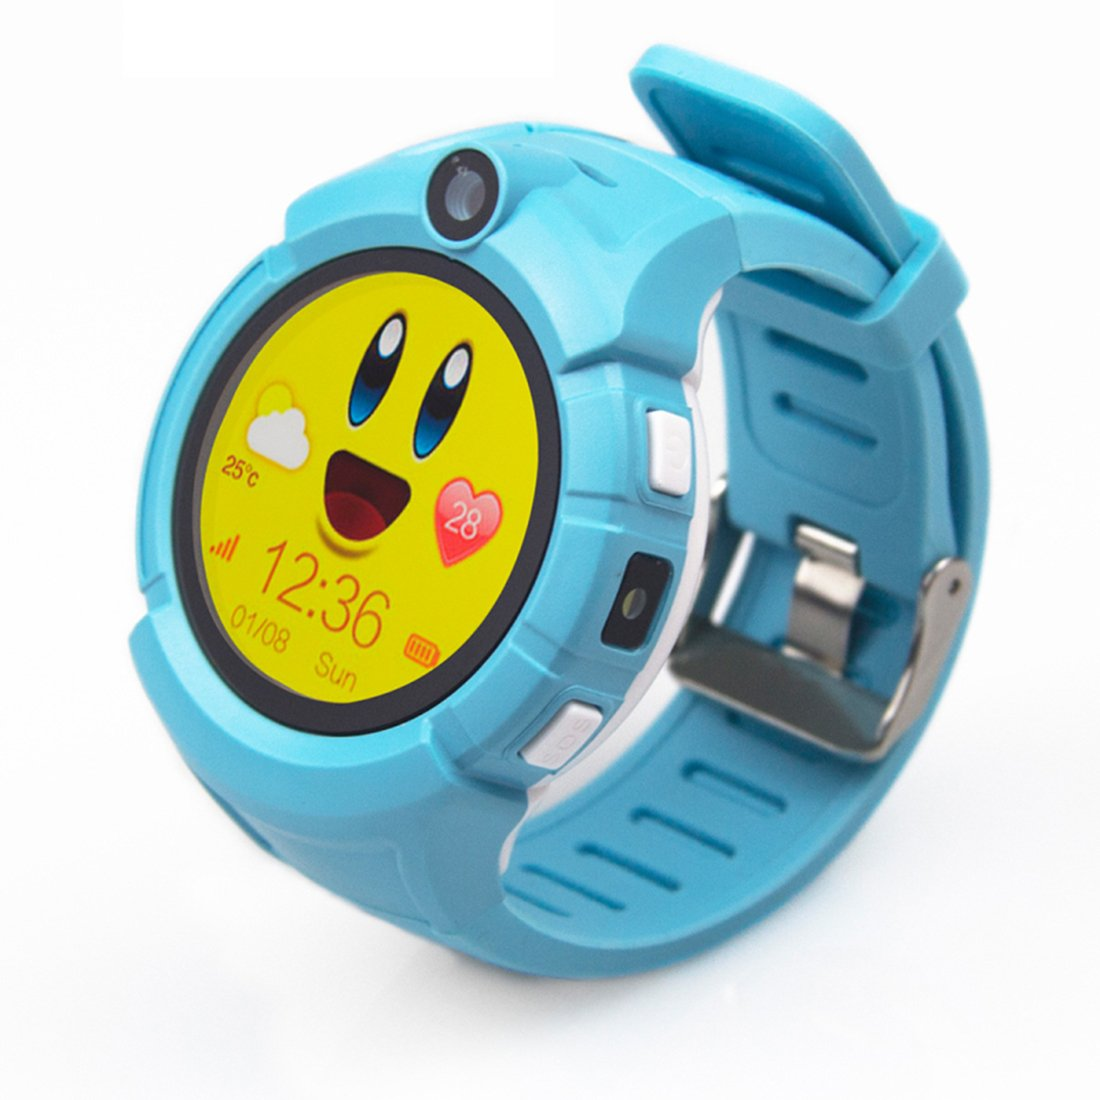 Amazon.com: PINCHU Q360 Kids Smart Watches GPS Location ...